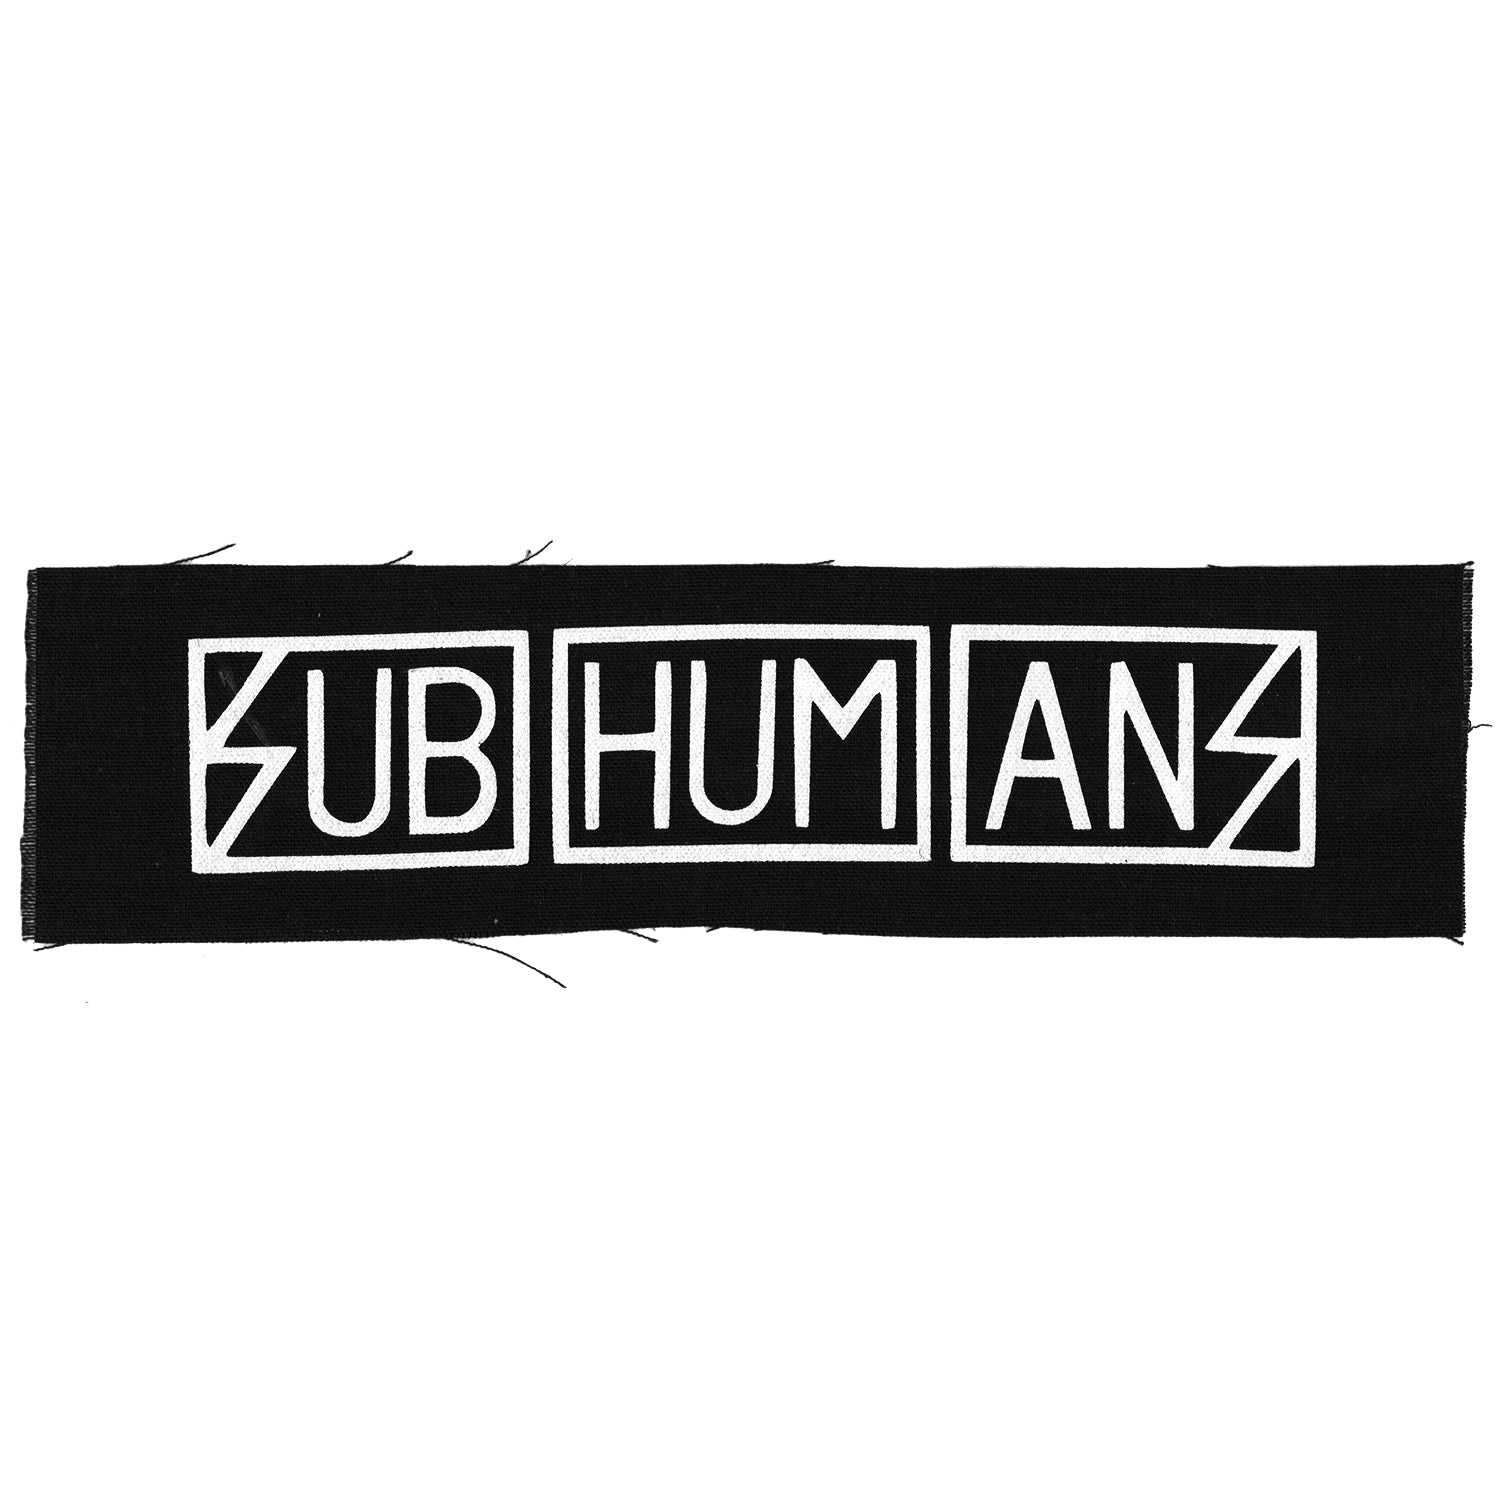 Subhumans - Text Logo - Black - Patch - Cloth - Screenprinted